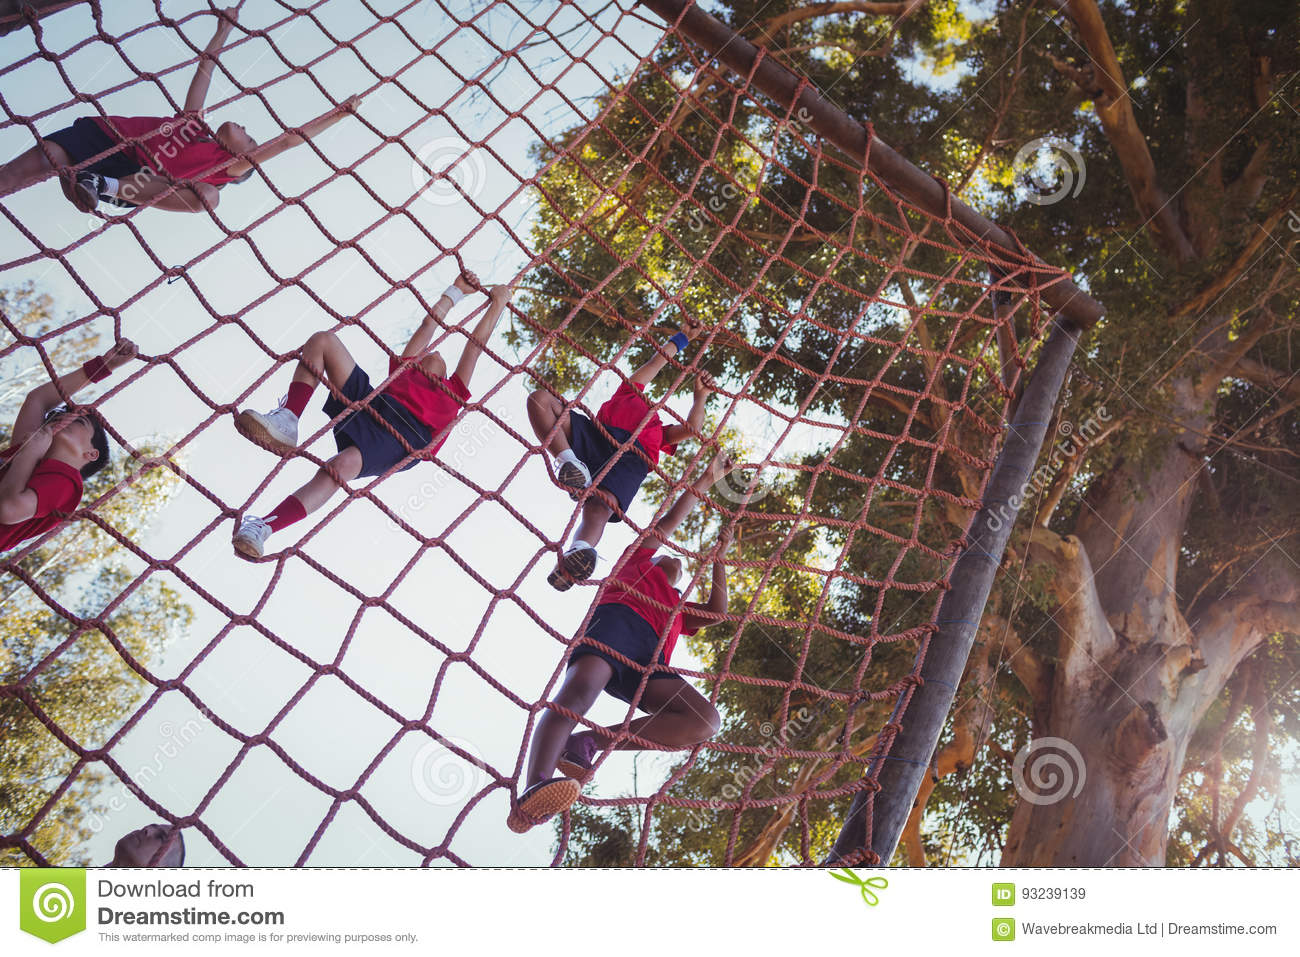 kids climbing a net during obstacle course training stock image